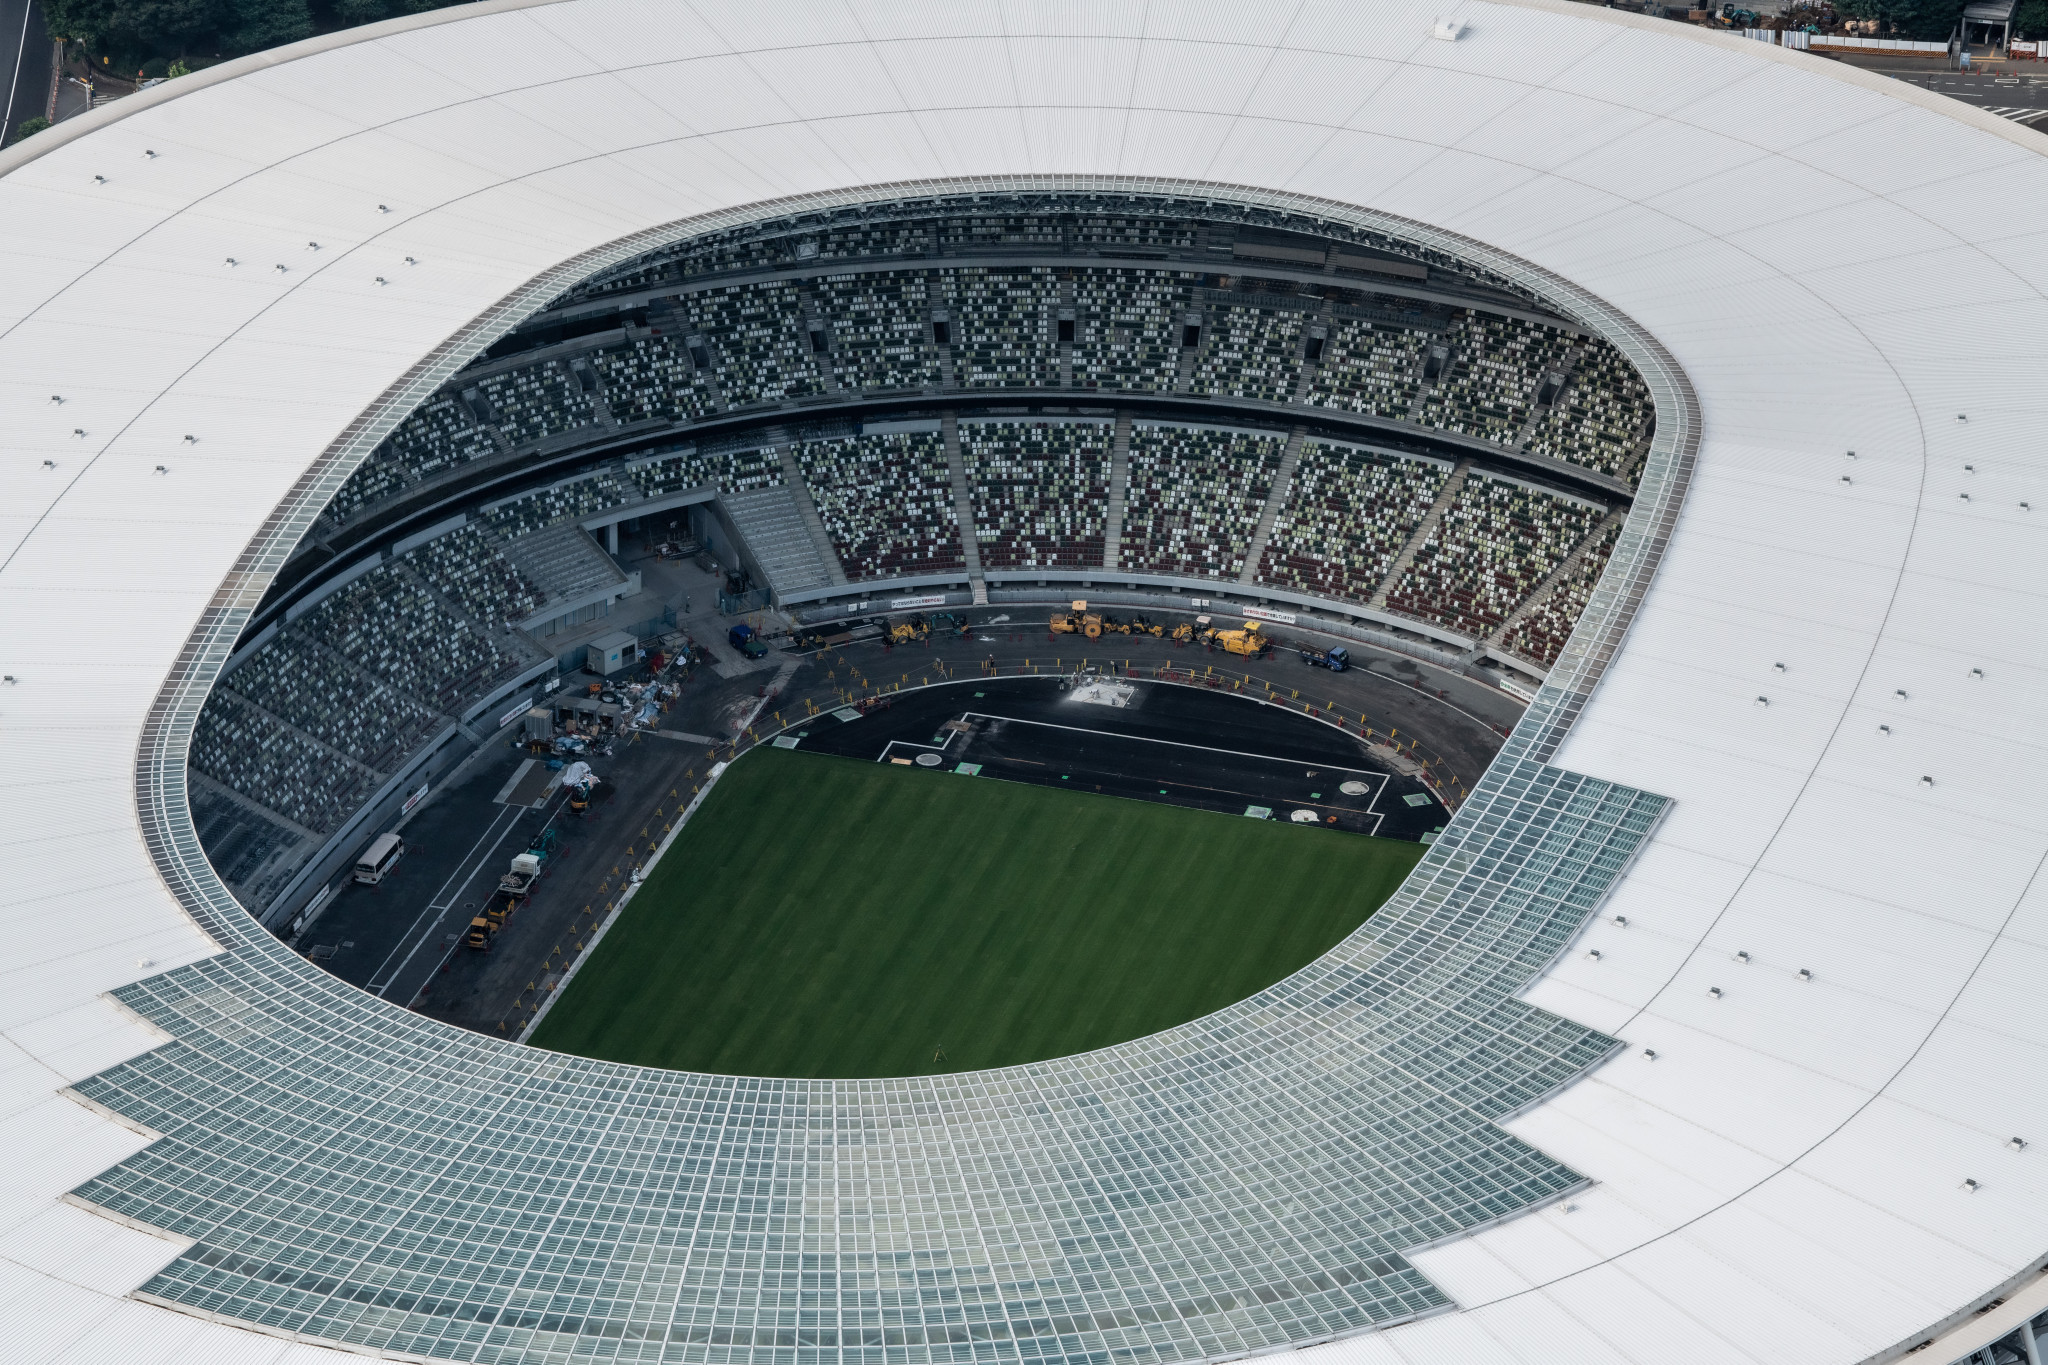 Studies around the New National Stadium in Tokyo have suggested temperatures could rise to 31 centigrade at the start of next year's Olympic marathon ©Getty Images